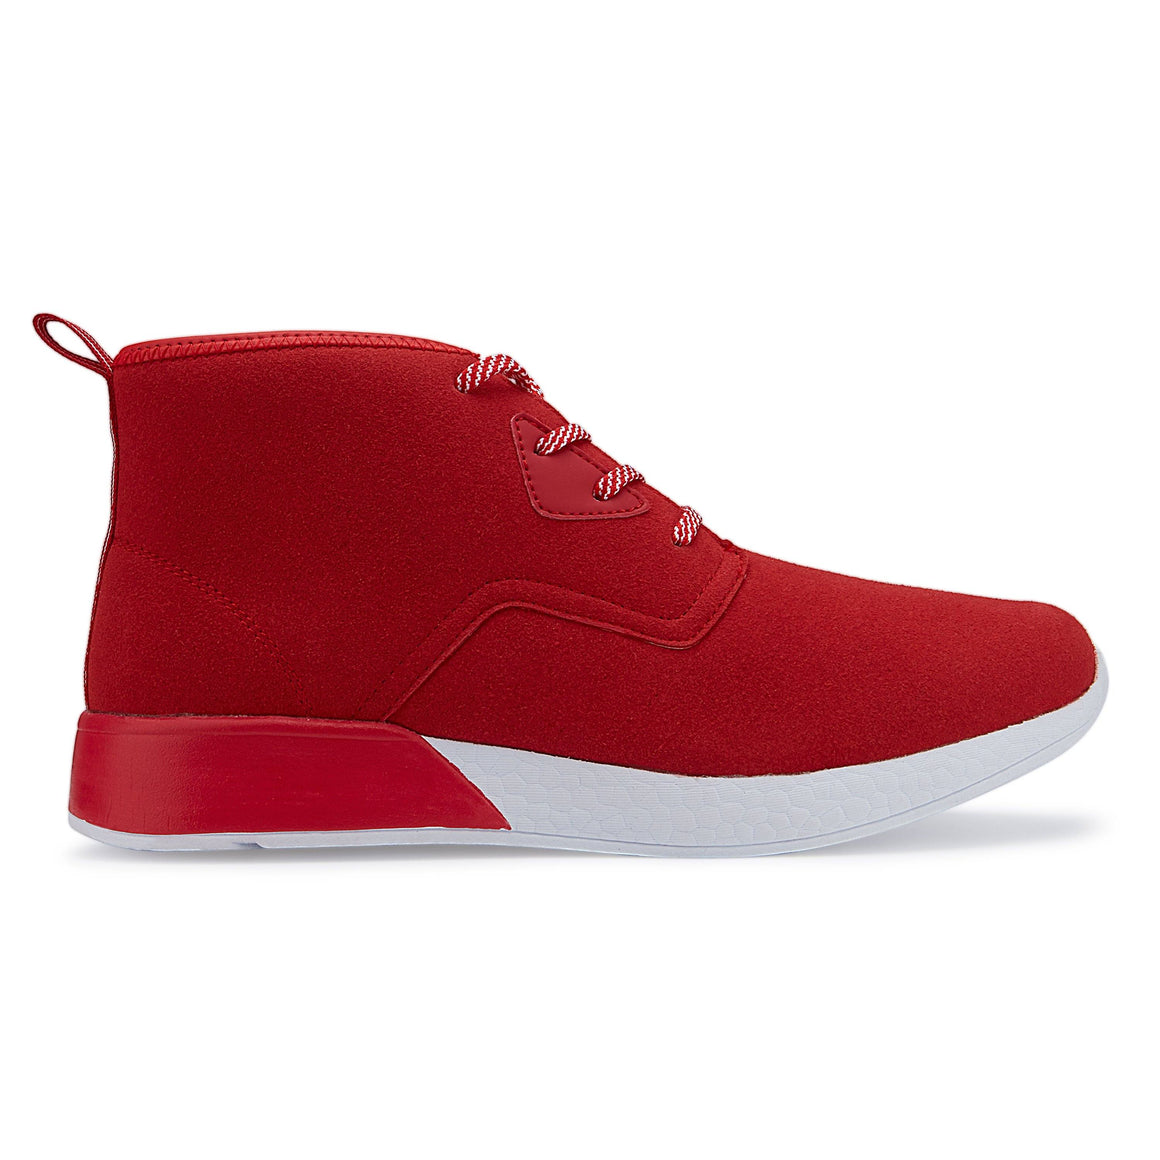 Xray Men's The Denali Casual Hightop Sneakers RED